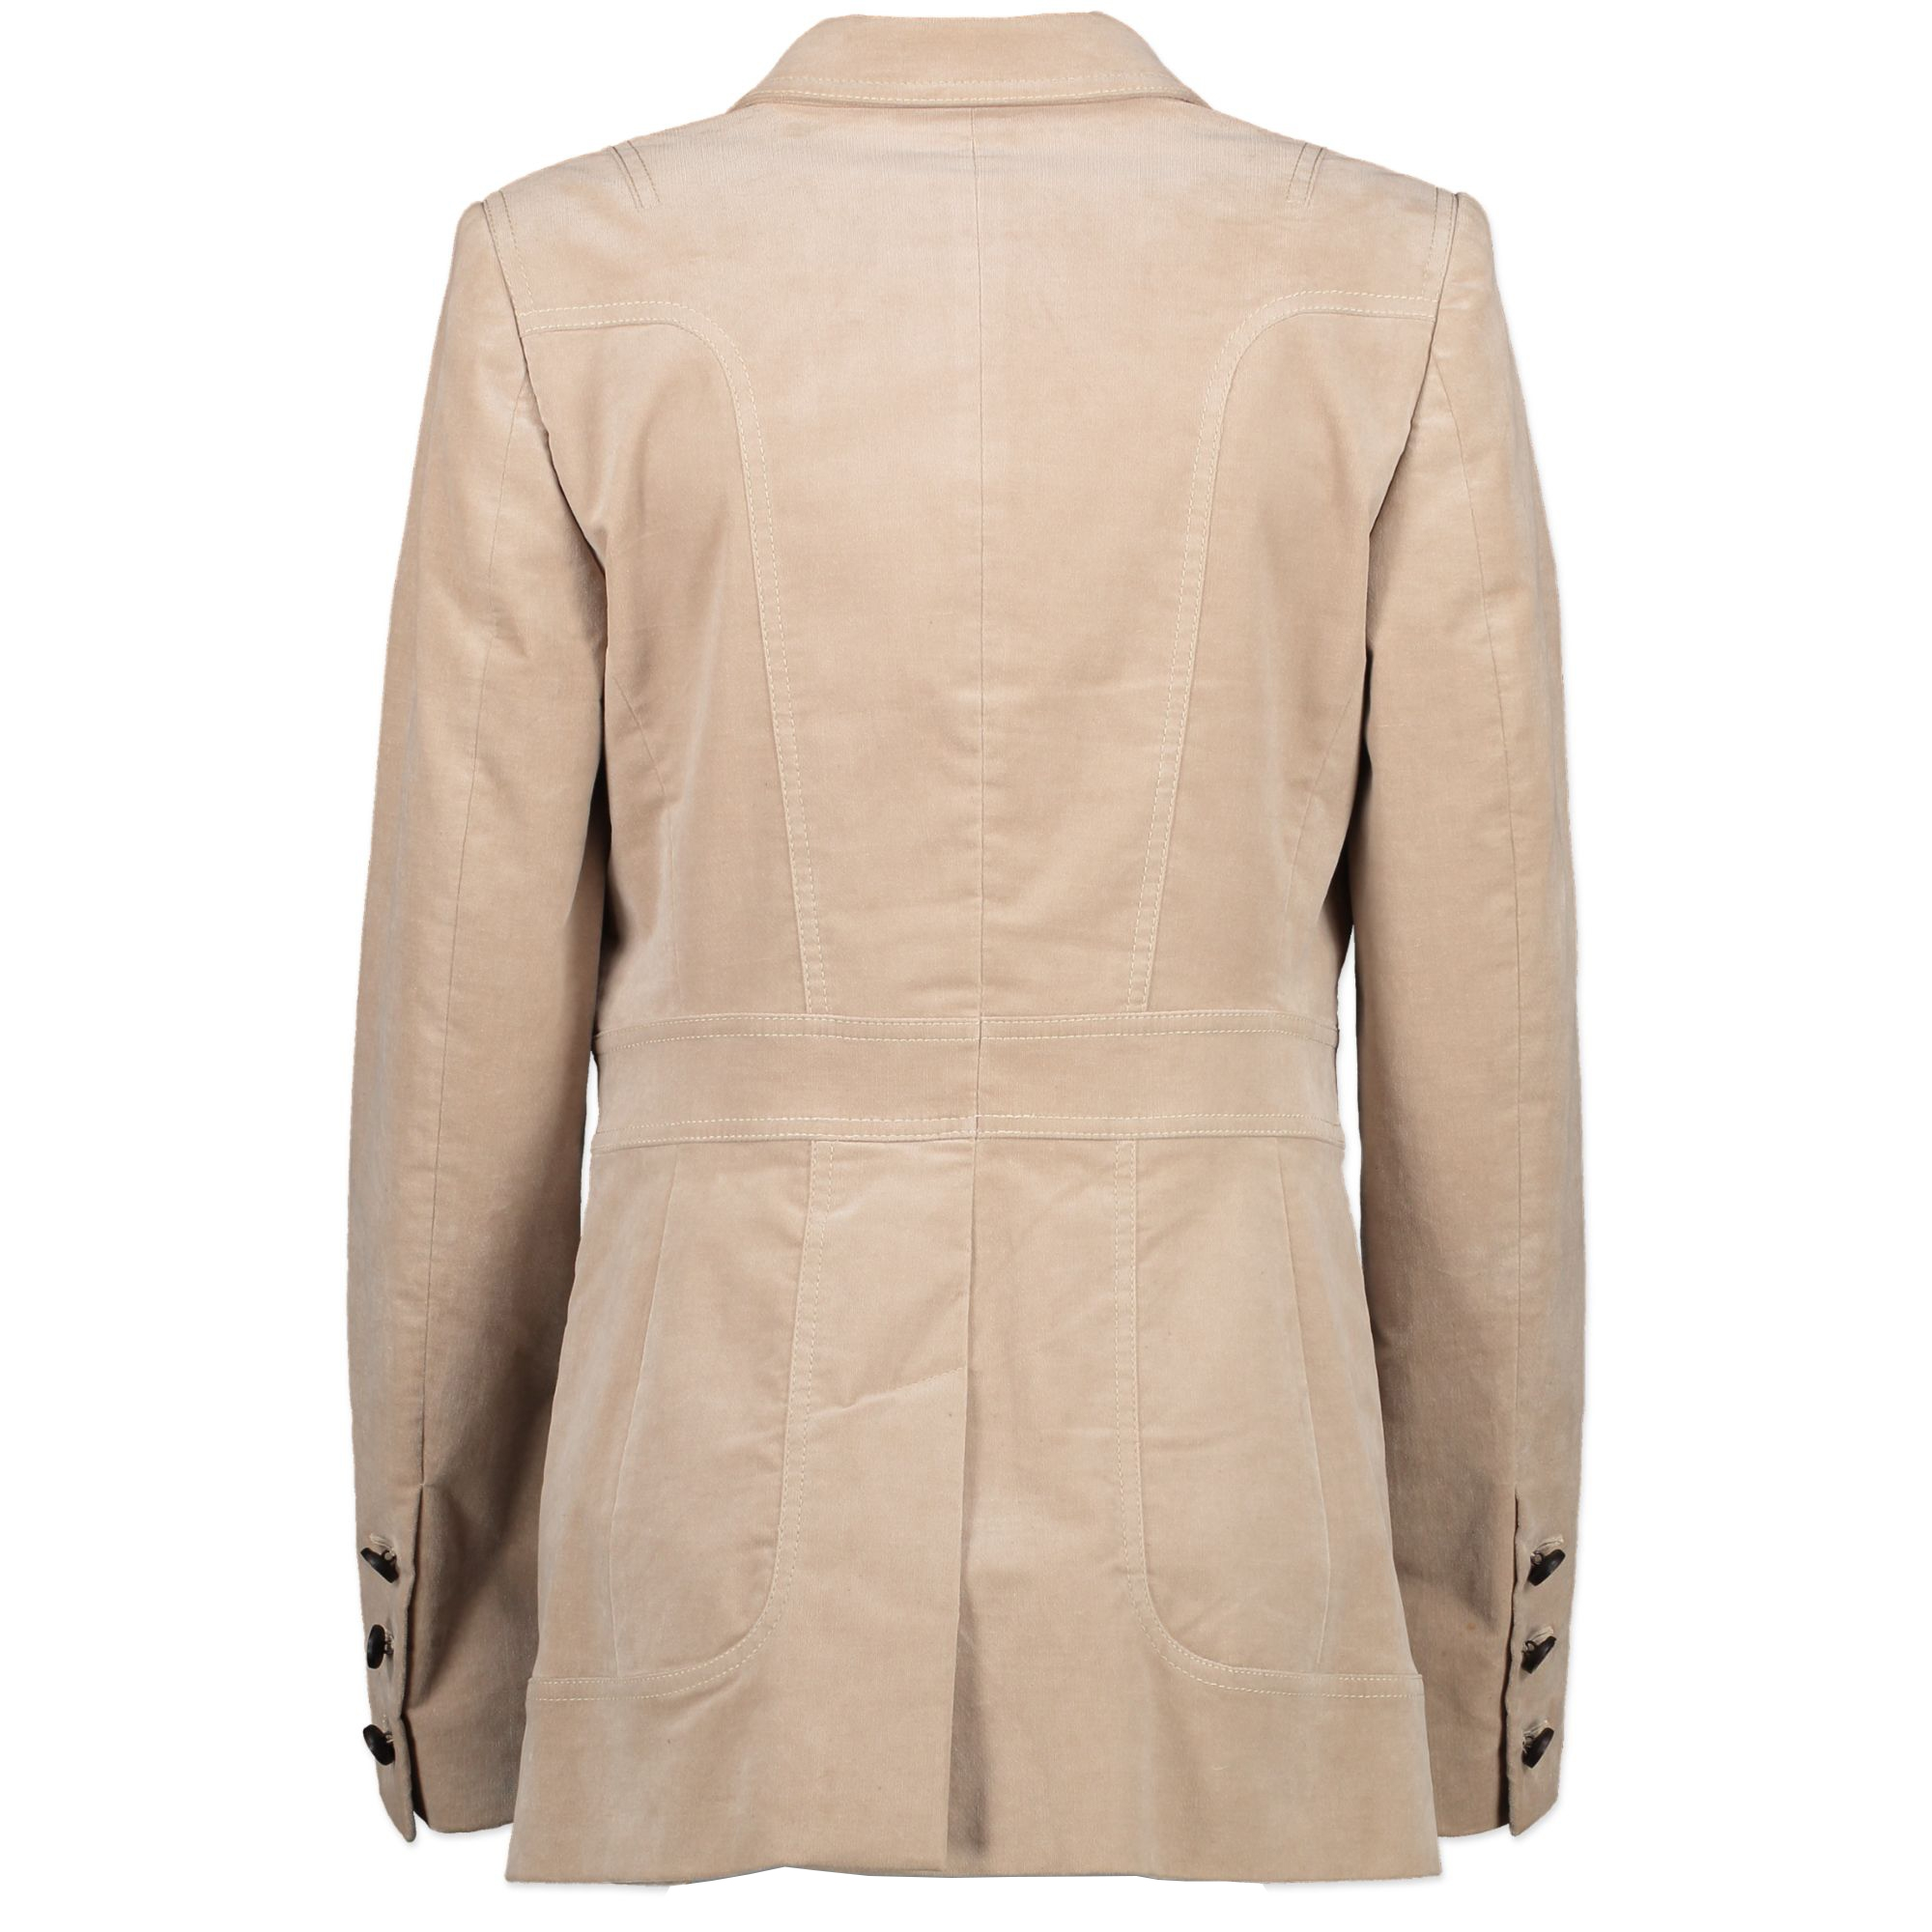 Gucci Beige Velvet Blazer - IT Size 42